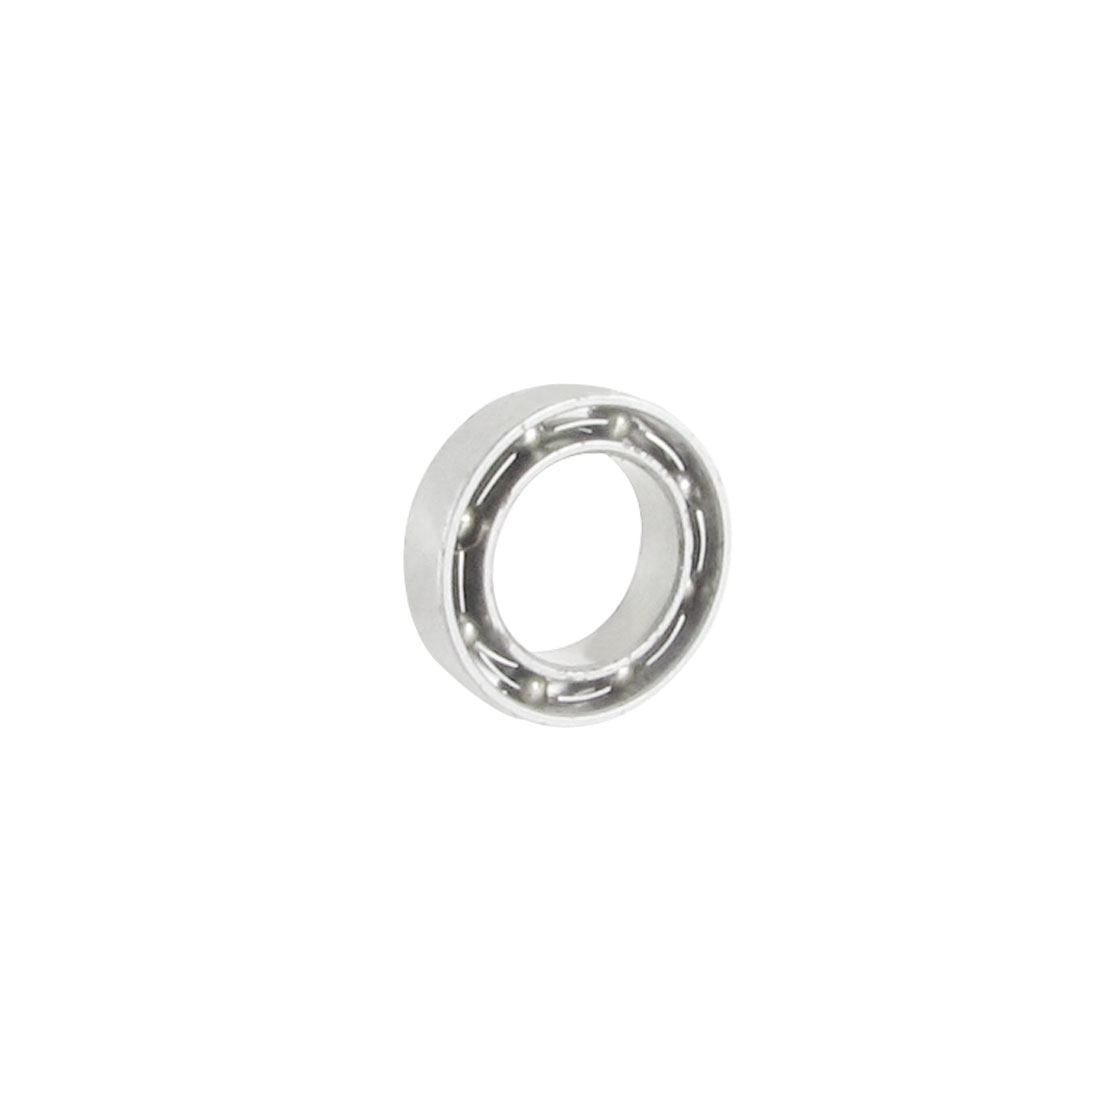 Stainless Steel Single Row Open Type Ball Bearing 5mm x 8mm x 2mm